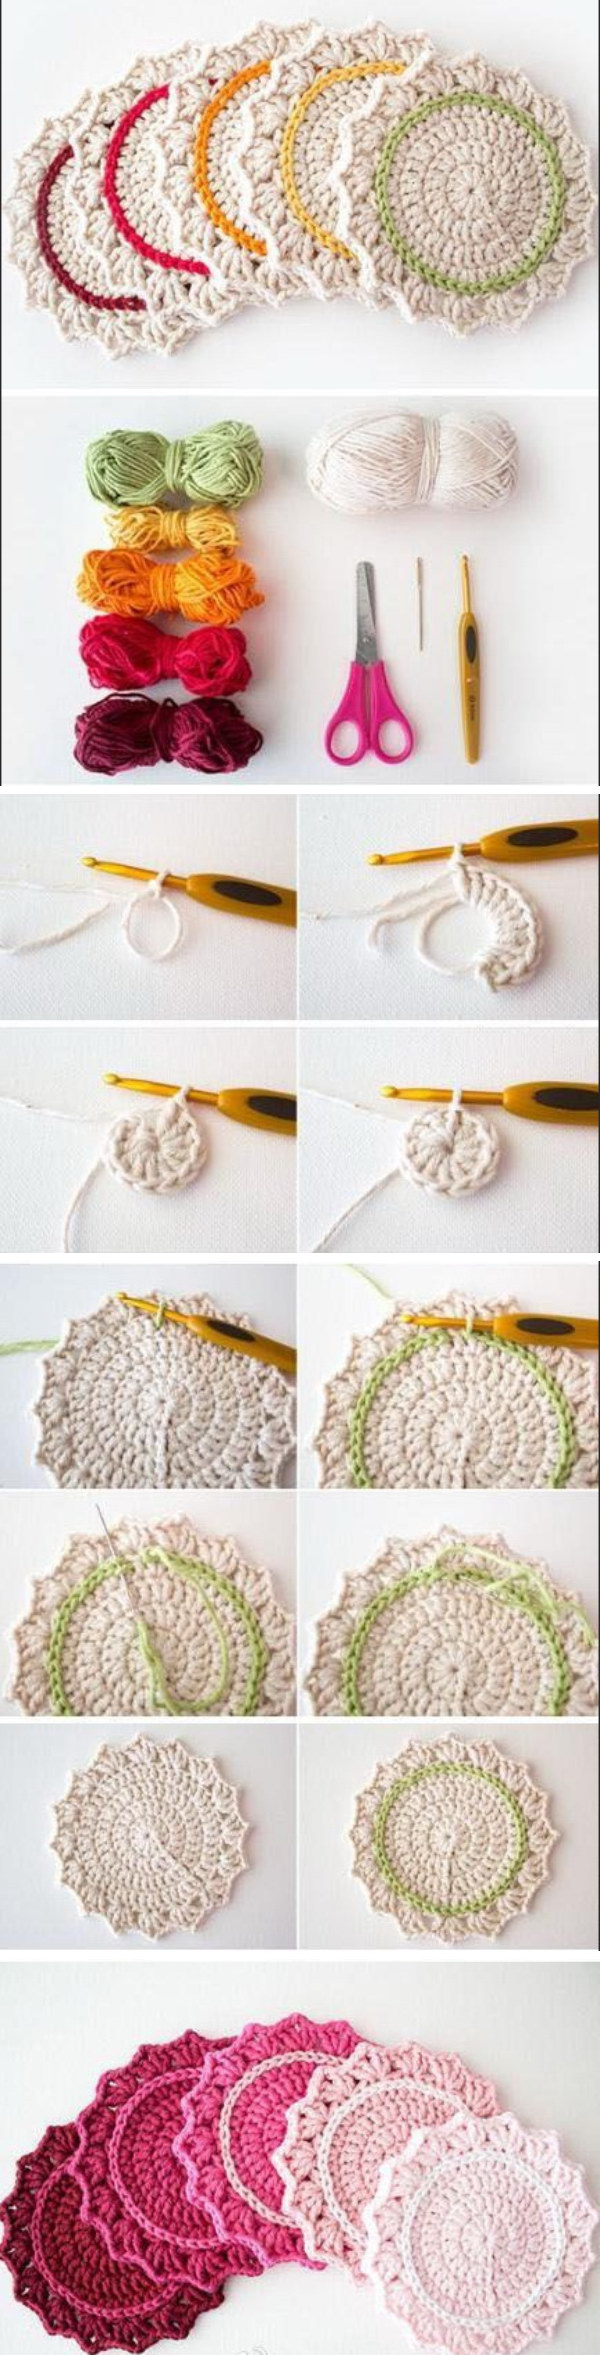 Ombre Crocheted Coasters.